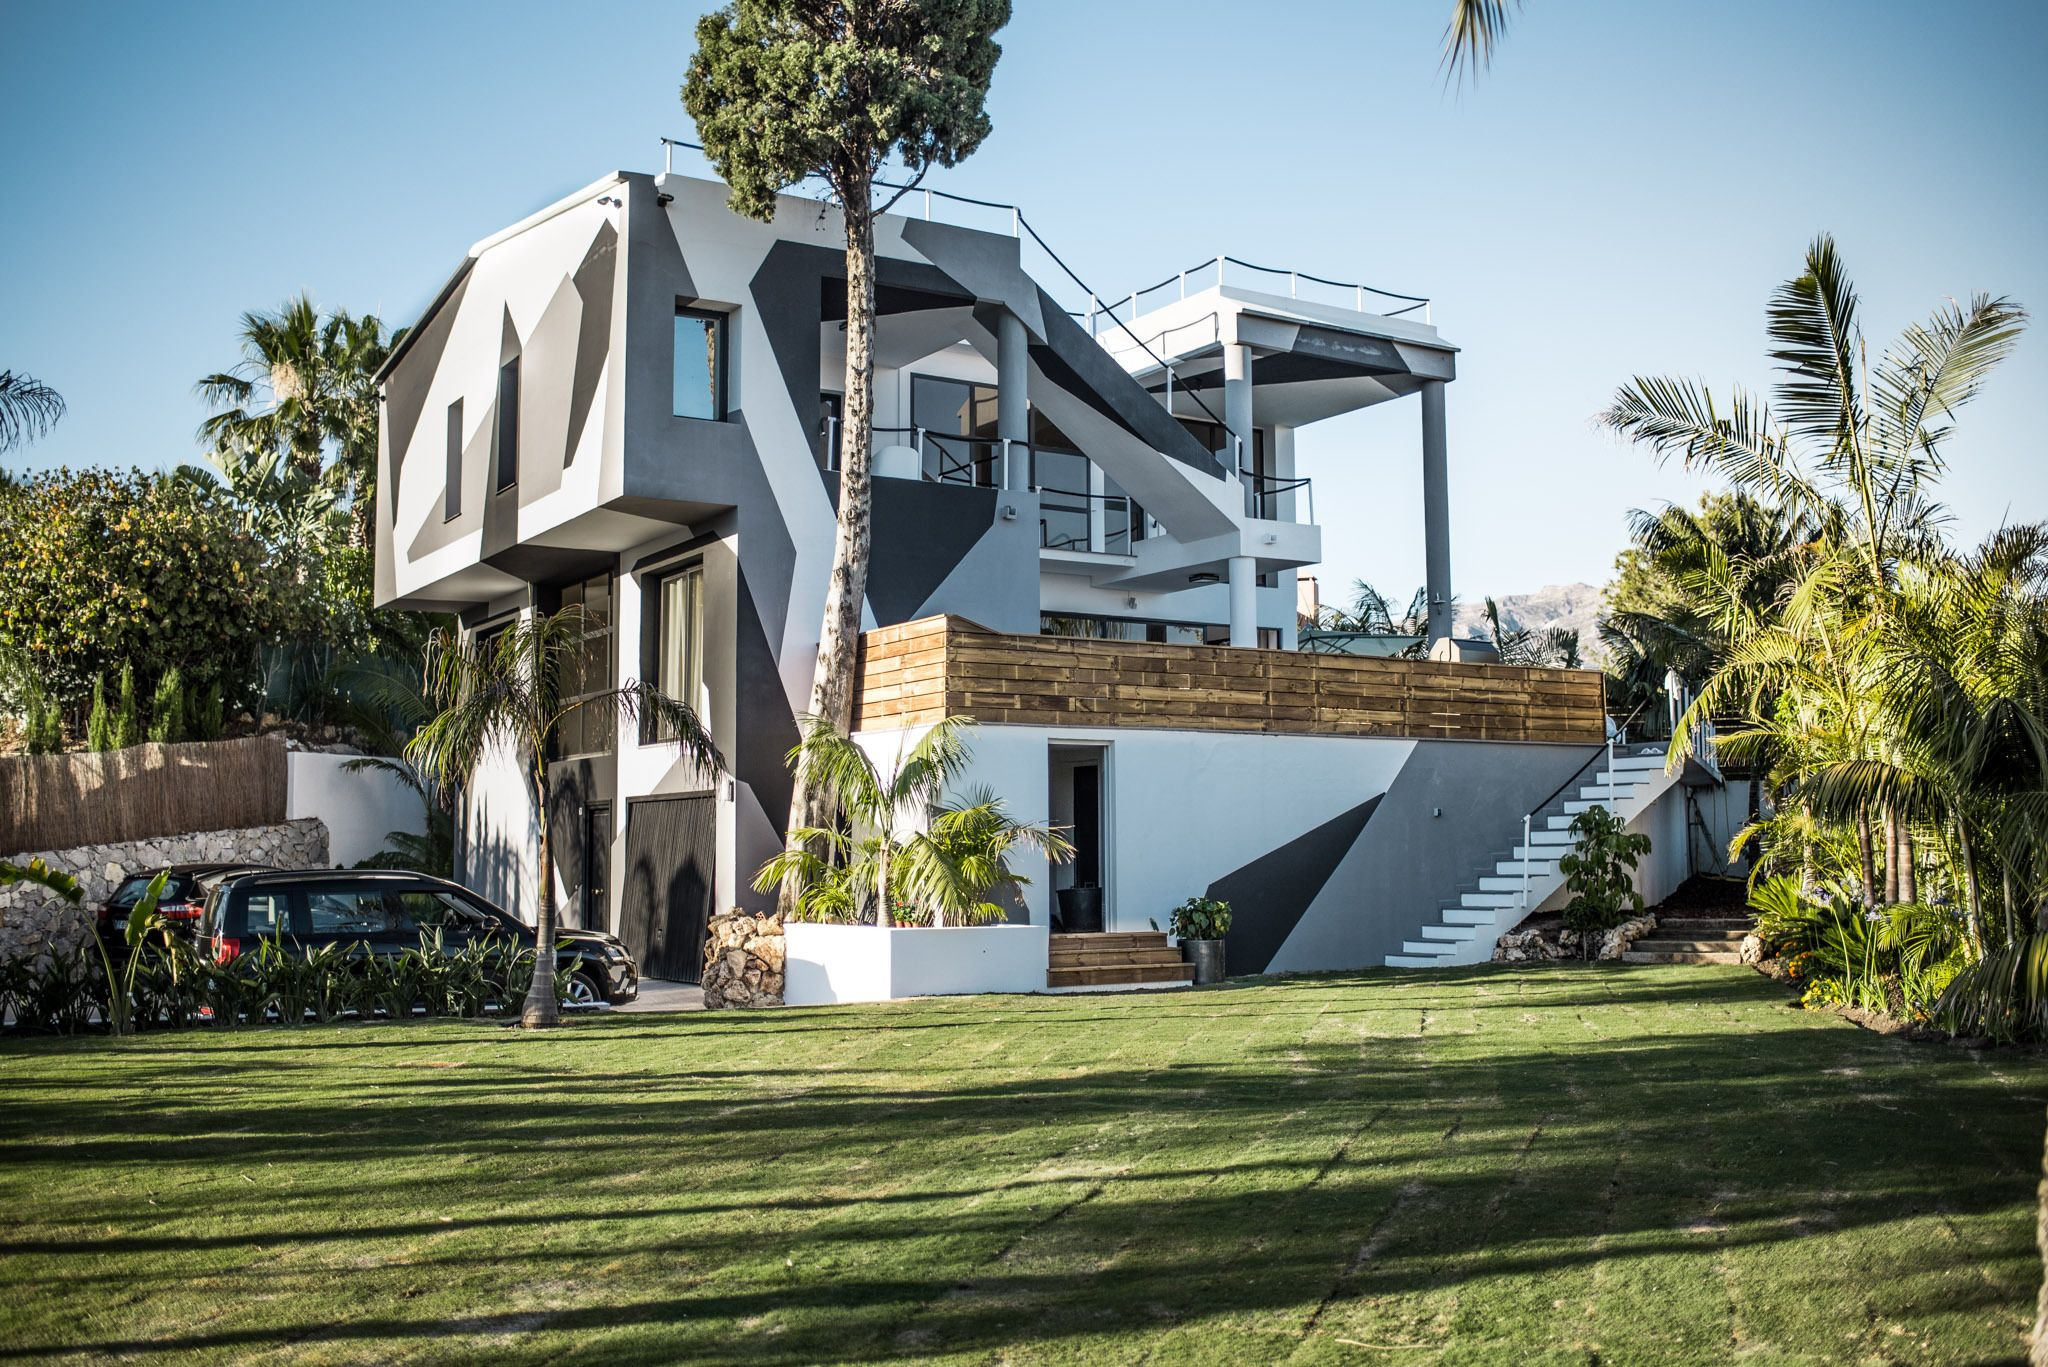 Camouflage Dream House Jon Olsson Is Selling Casa Camo In Marbella For 1 7m Euro Steemit House Dream House Architecture House